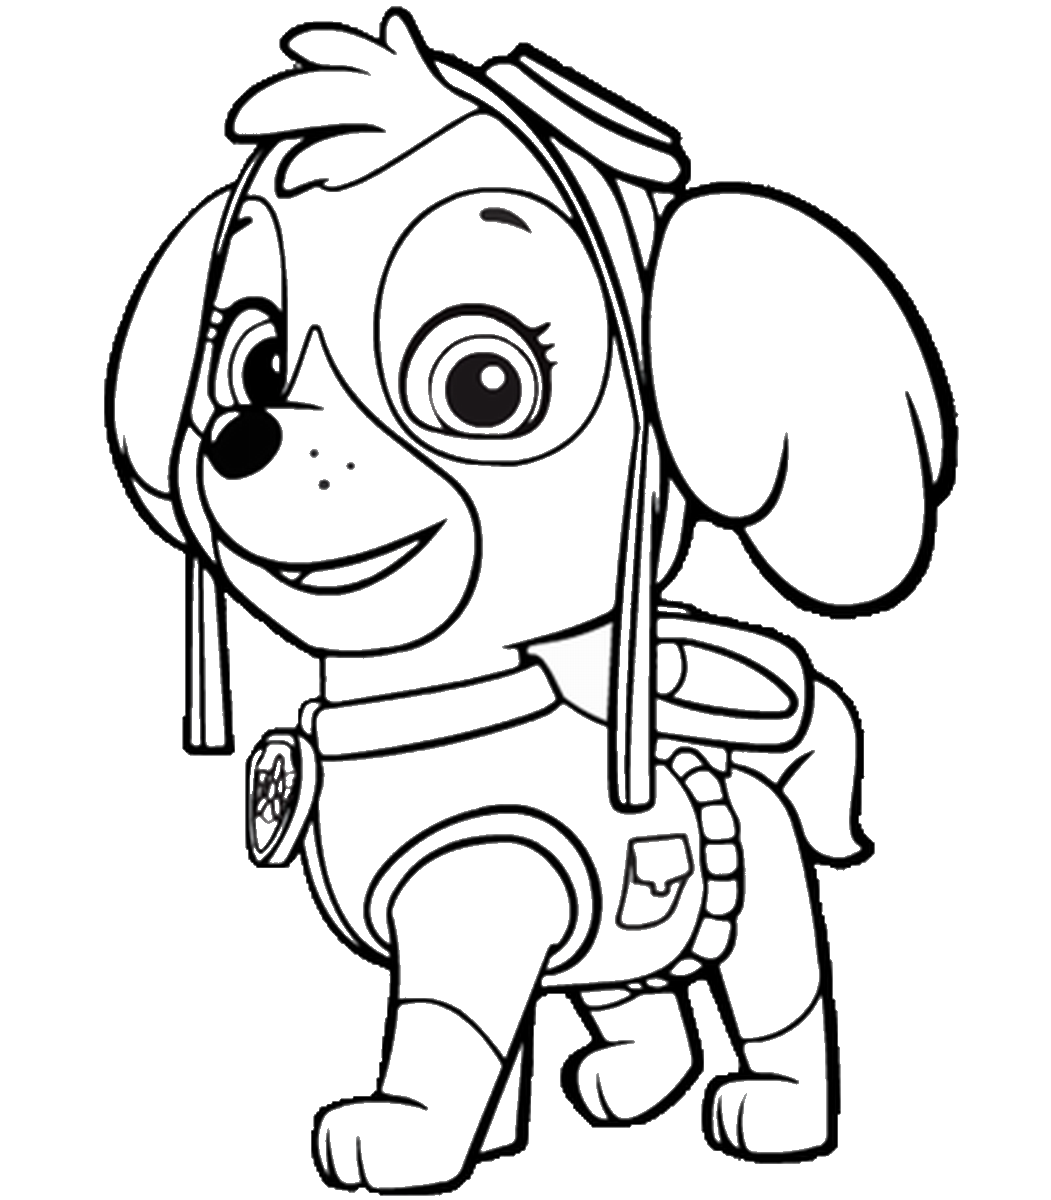 paw patrol for coloring paw patrol coloring pages for boys educative printable paw for coloring patrol